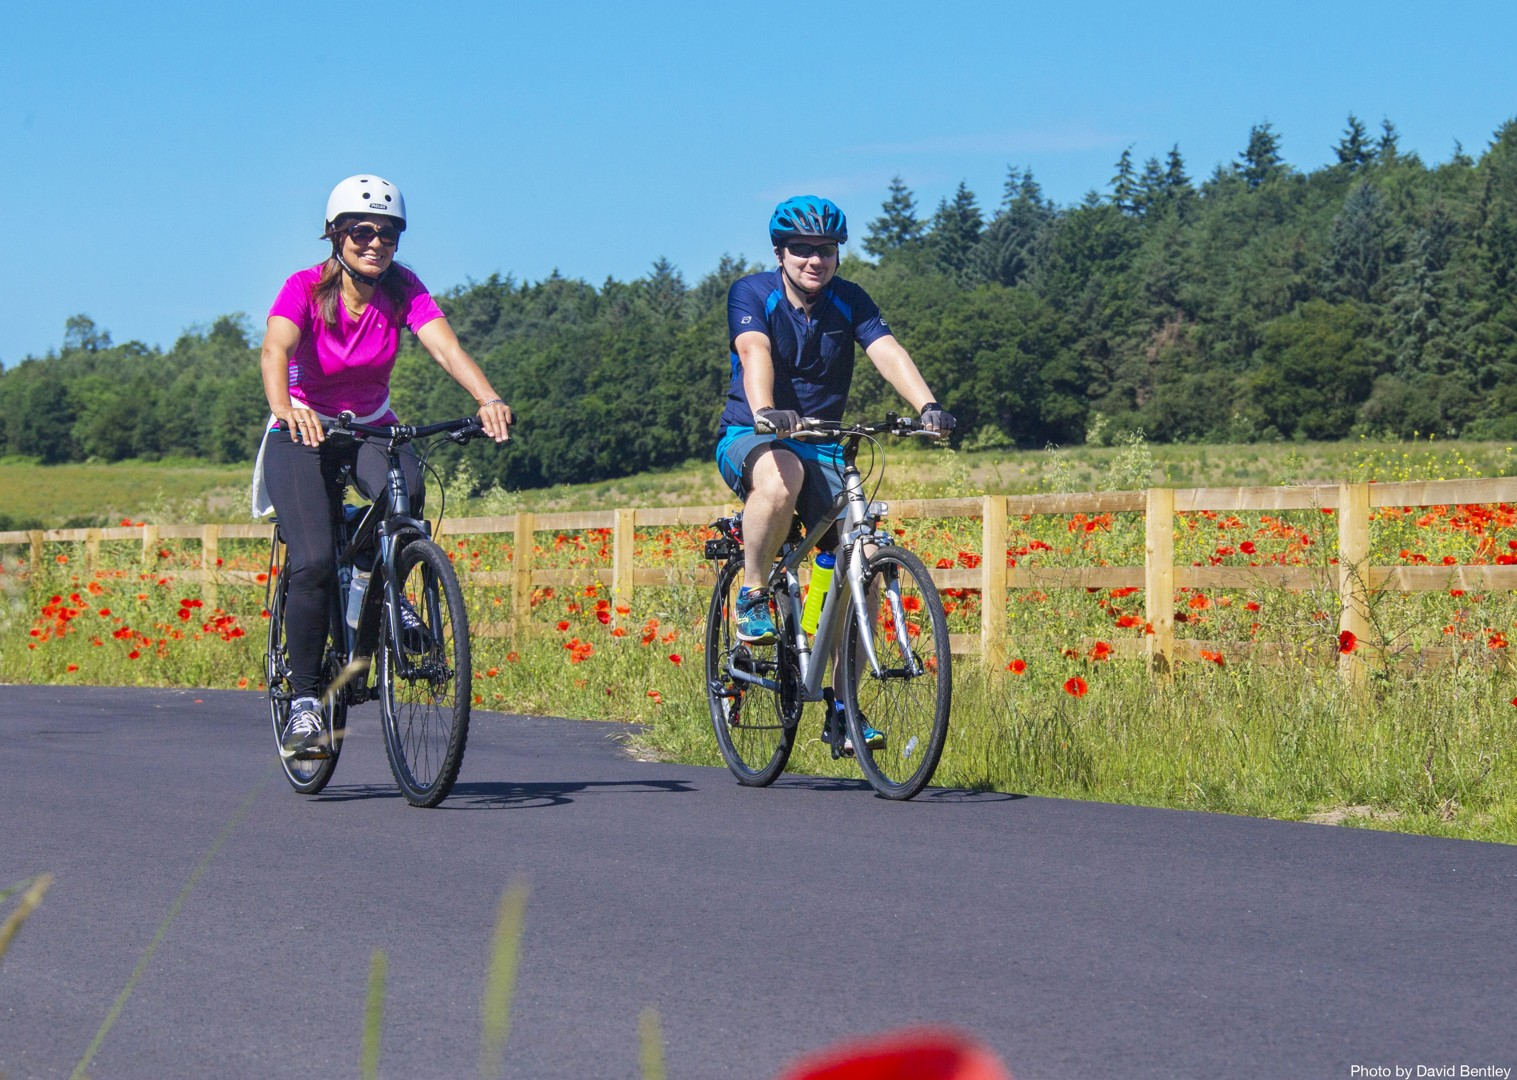 Hadrians-Cycleway-Self-Guided-Leisure-Cycling-Holiday-Cumbria-and-Northumberland.jpg - UK - Hadrian's Cycleway - 4 Days Cycling - Self-Guided Leisure Cycling Holiday - Leisure Cycling